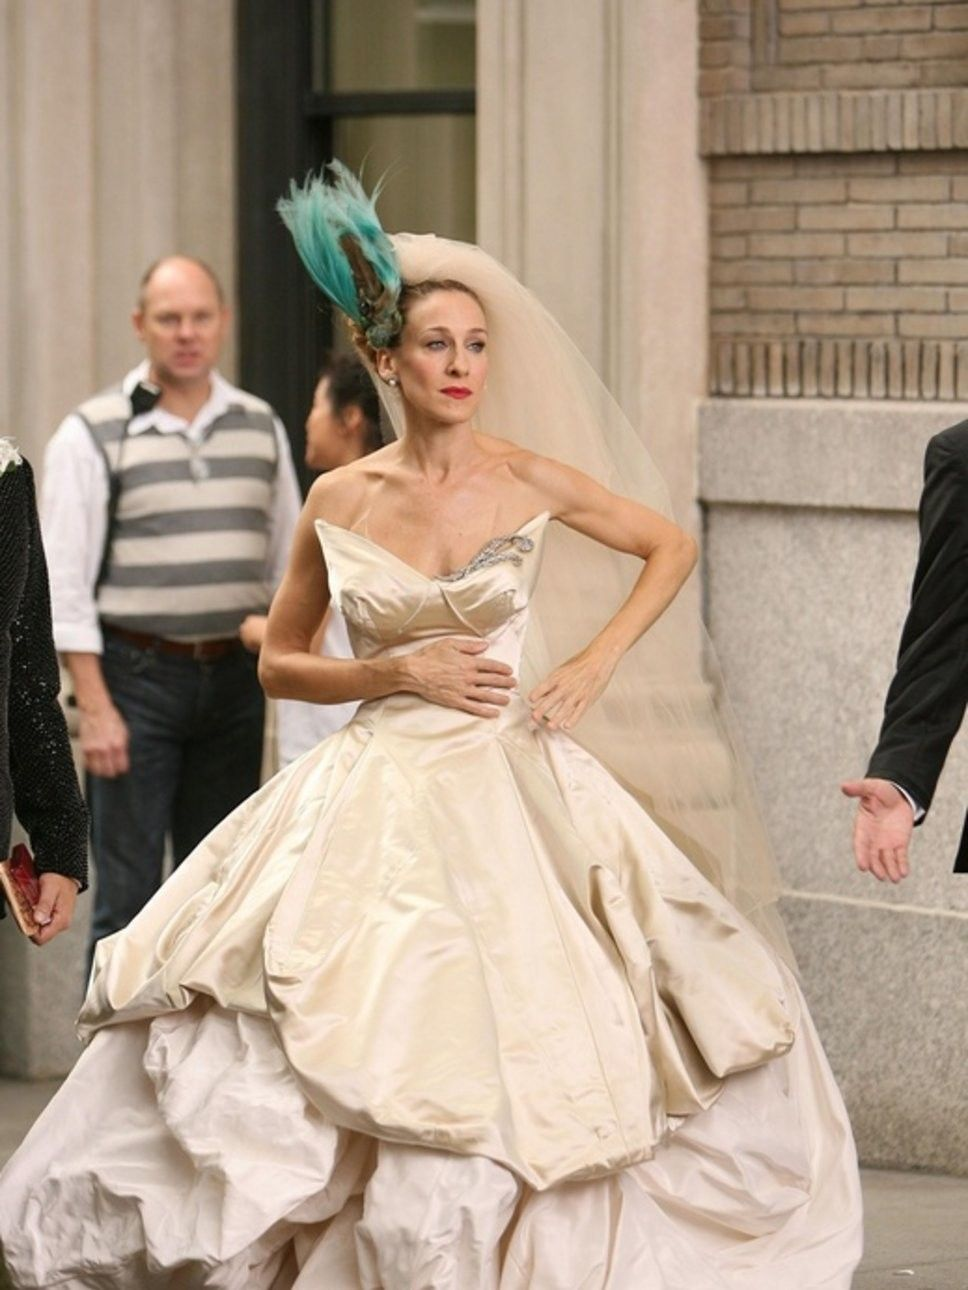 The Best And Worst Tv And Film Wedding Dresses In 2020 Worst Wedding Dress Carrie Bradshaw Wedding Dress Most Beautiful Wedding Dresses